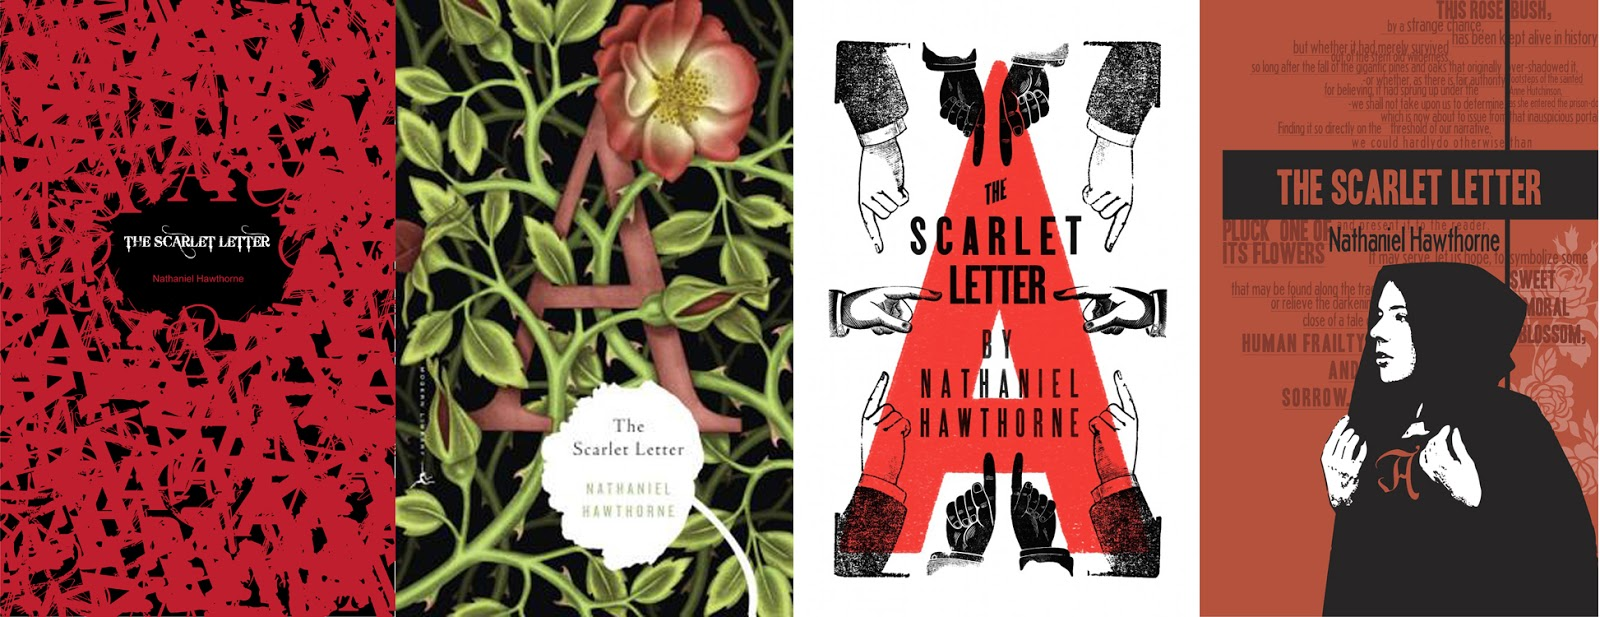 public humiliation in the scarlet letter a novel by nathaniel hawthorne Complete summary of nathaniel hawthorne's the scarlet letter enotes plot summaries in a shameful public from her very first introduction in the novel as.